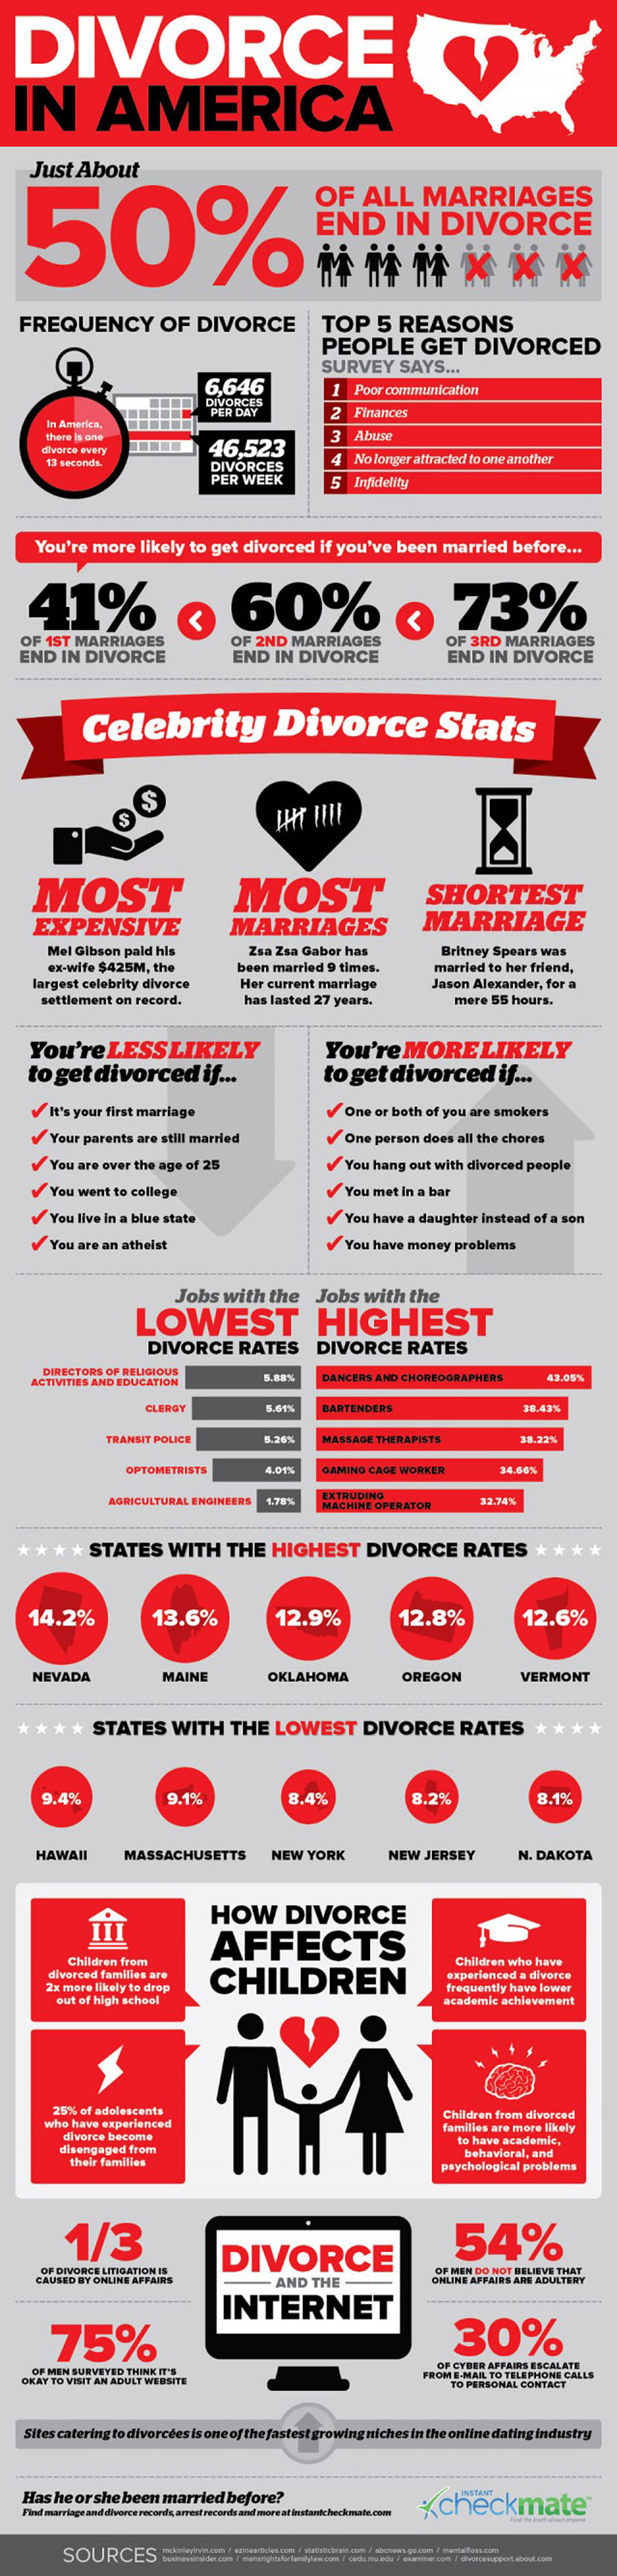 IG Divorce-in-America